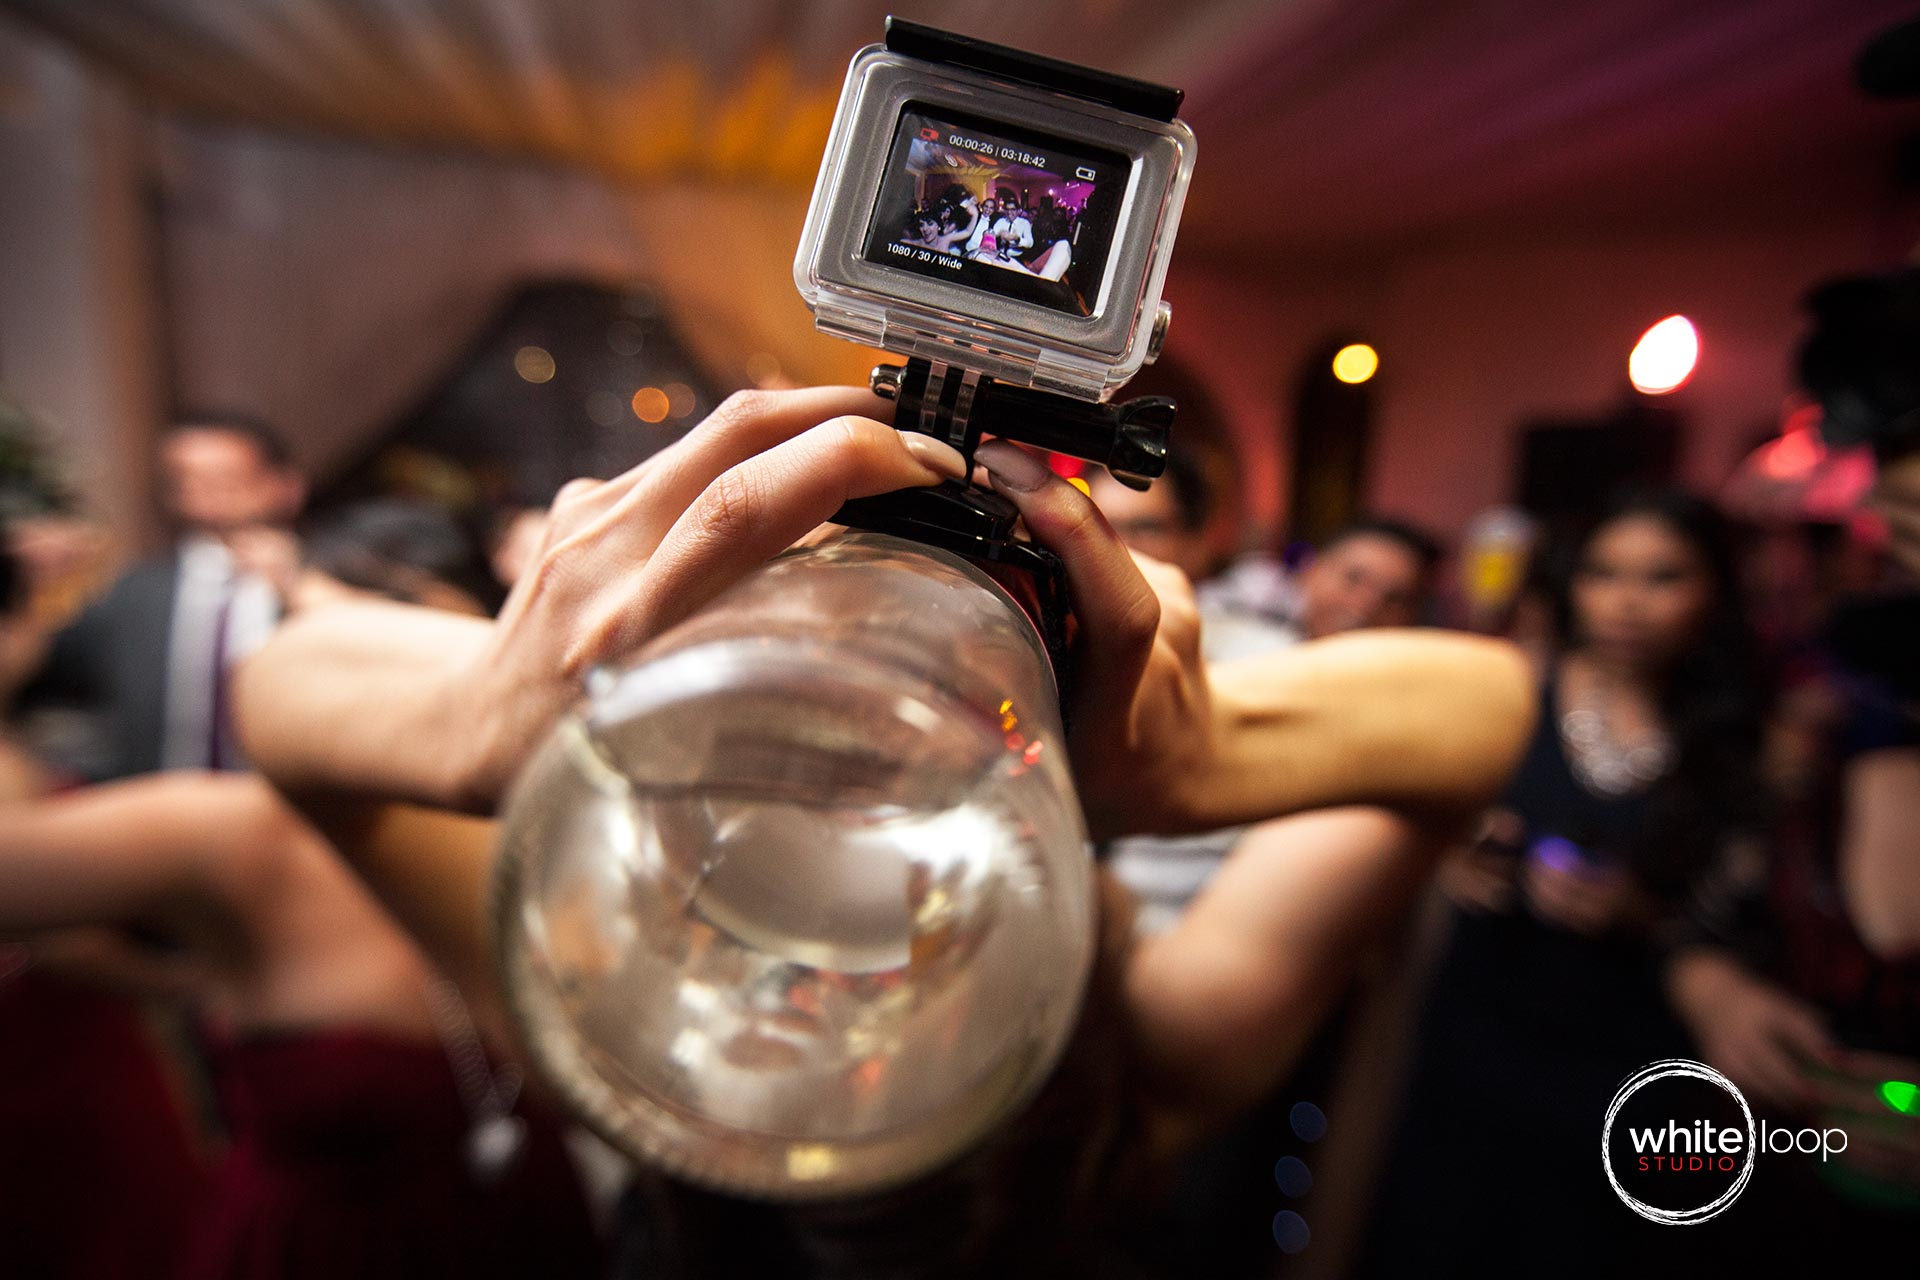 From a Gopro documenting the party, placed in a bottle of liquor.